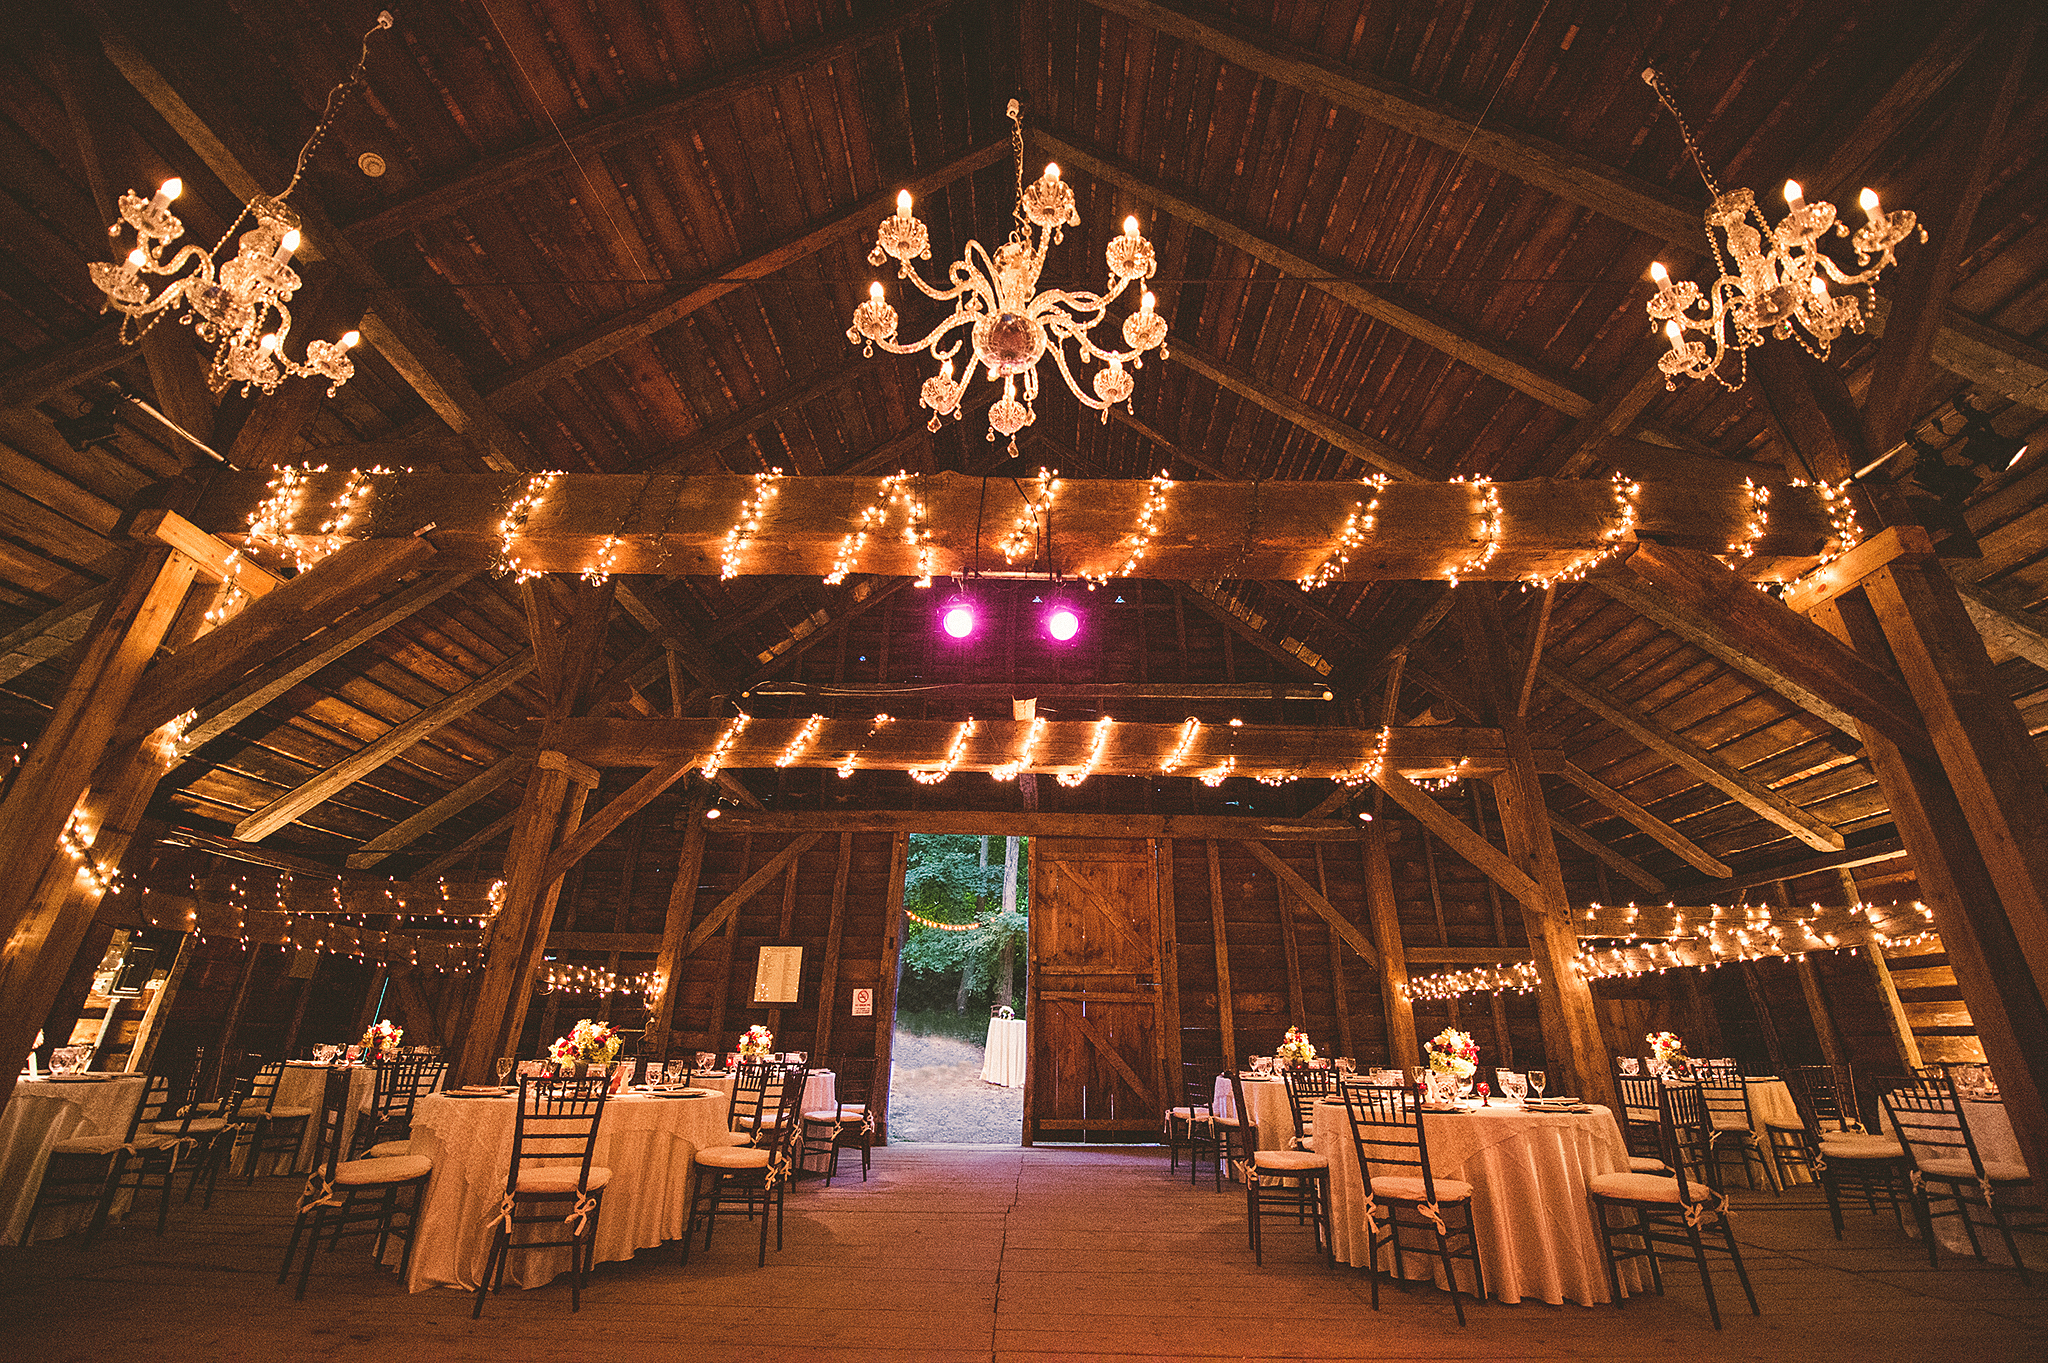 28-mt-gulian-barn-wedding.jpg